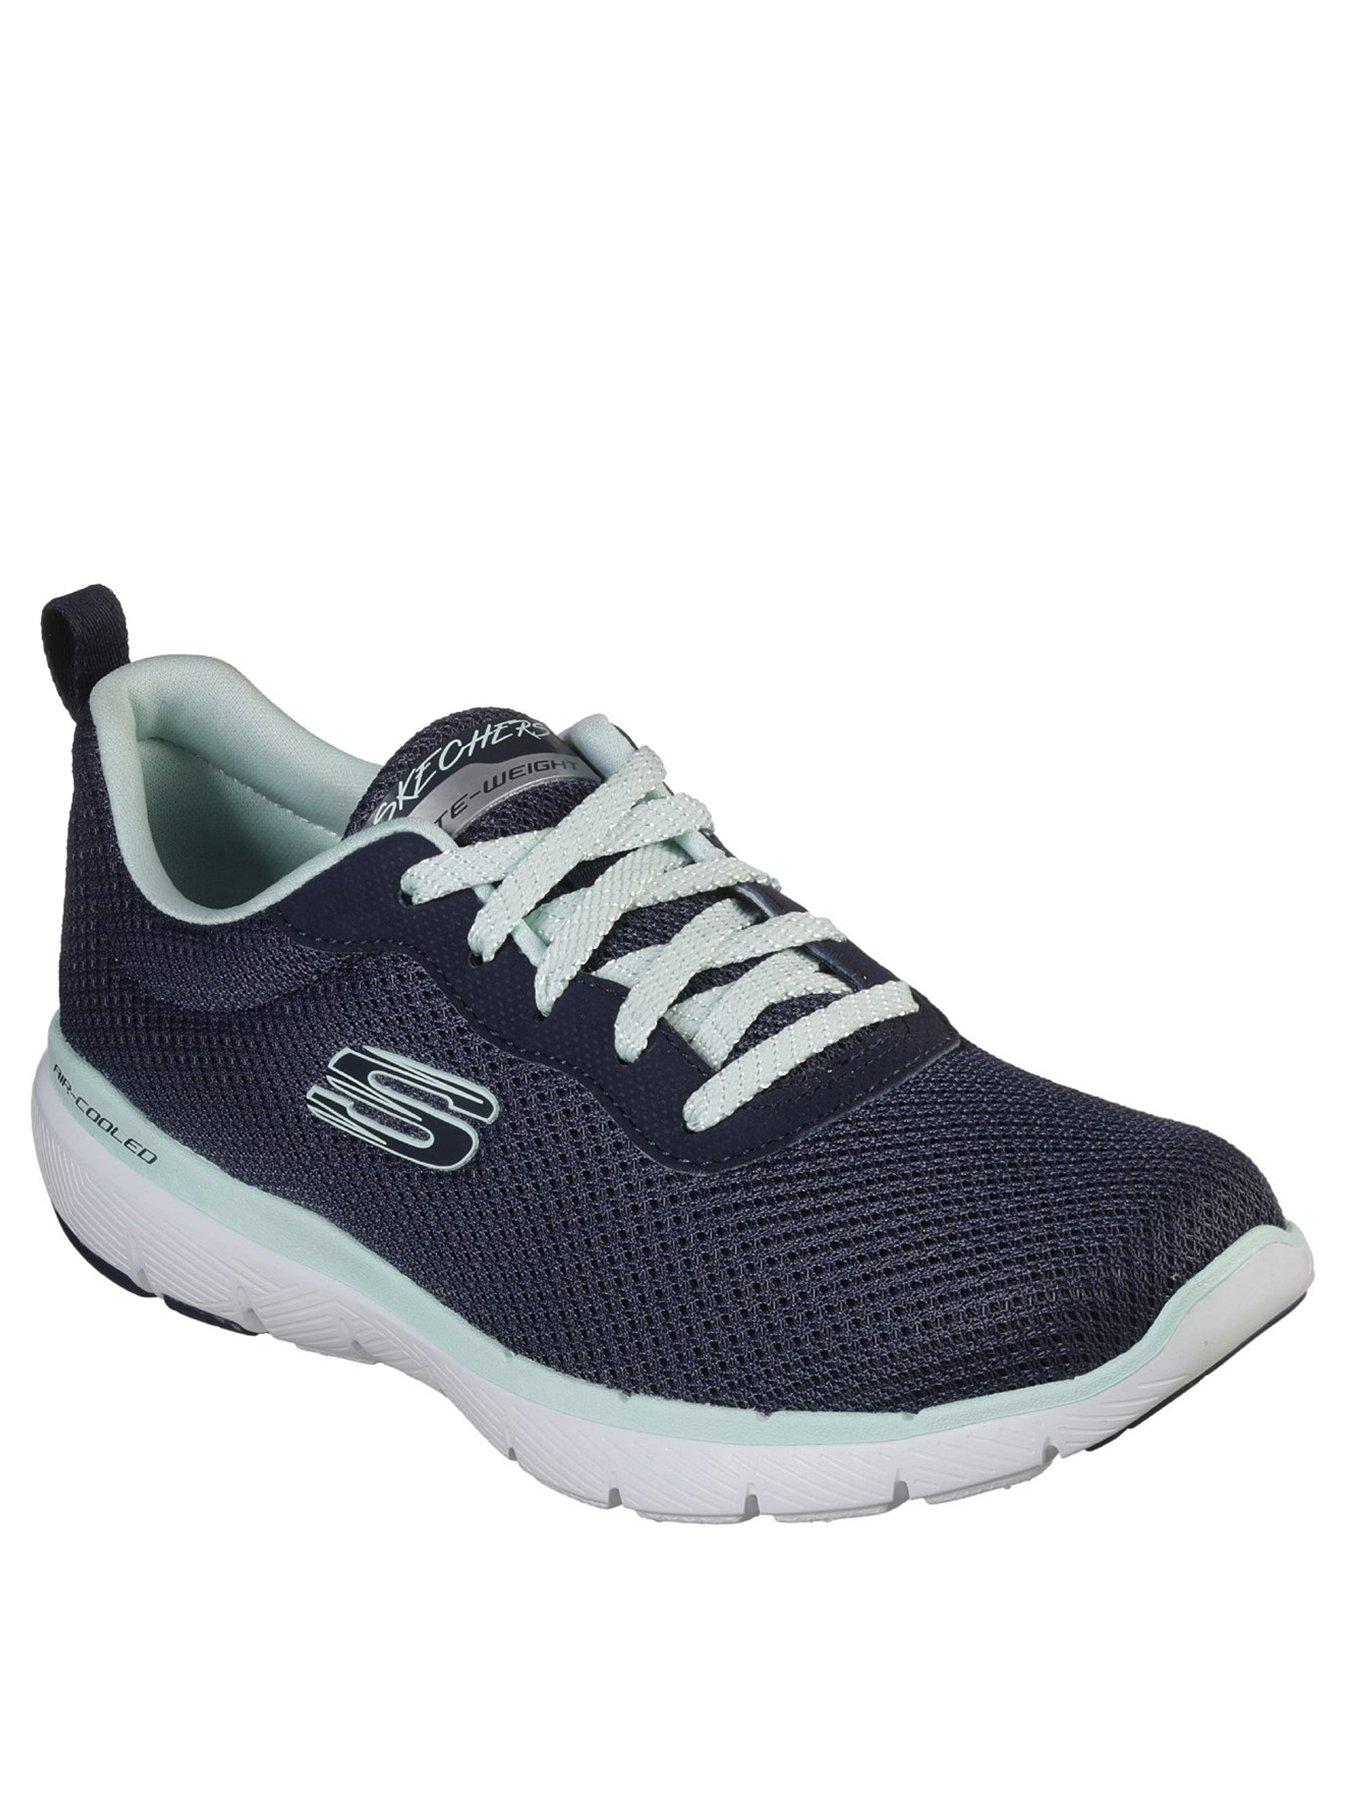 Shop Boutique Brands | Skechers | very.co.uk